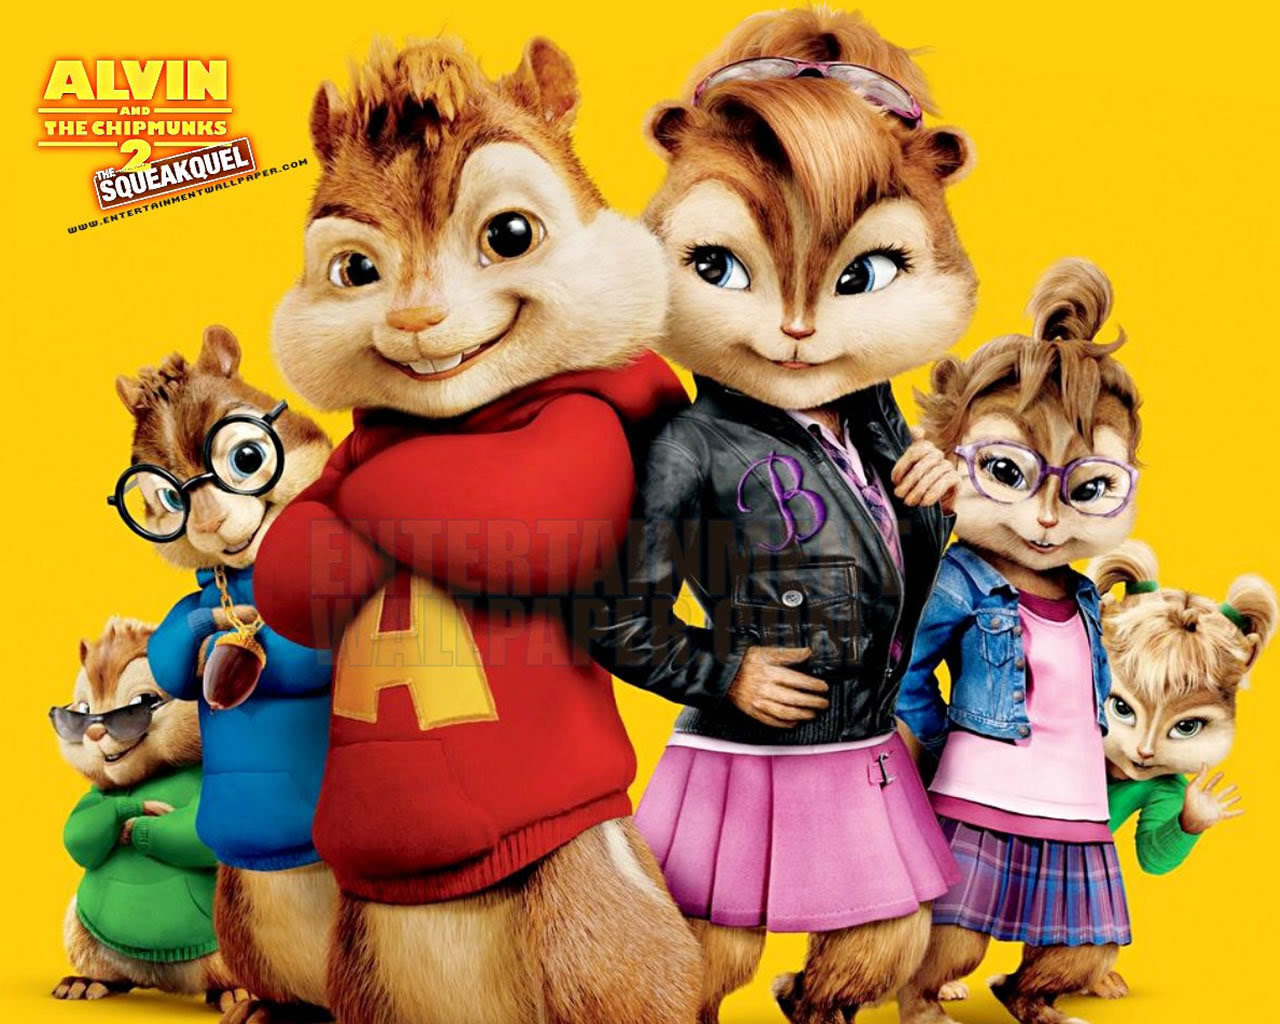 The Chipmunks Alvin And The Chipmunks Wallpaper 22170709 Fanpop